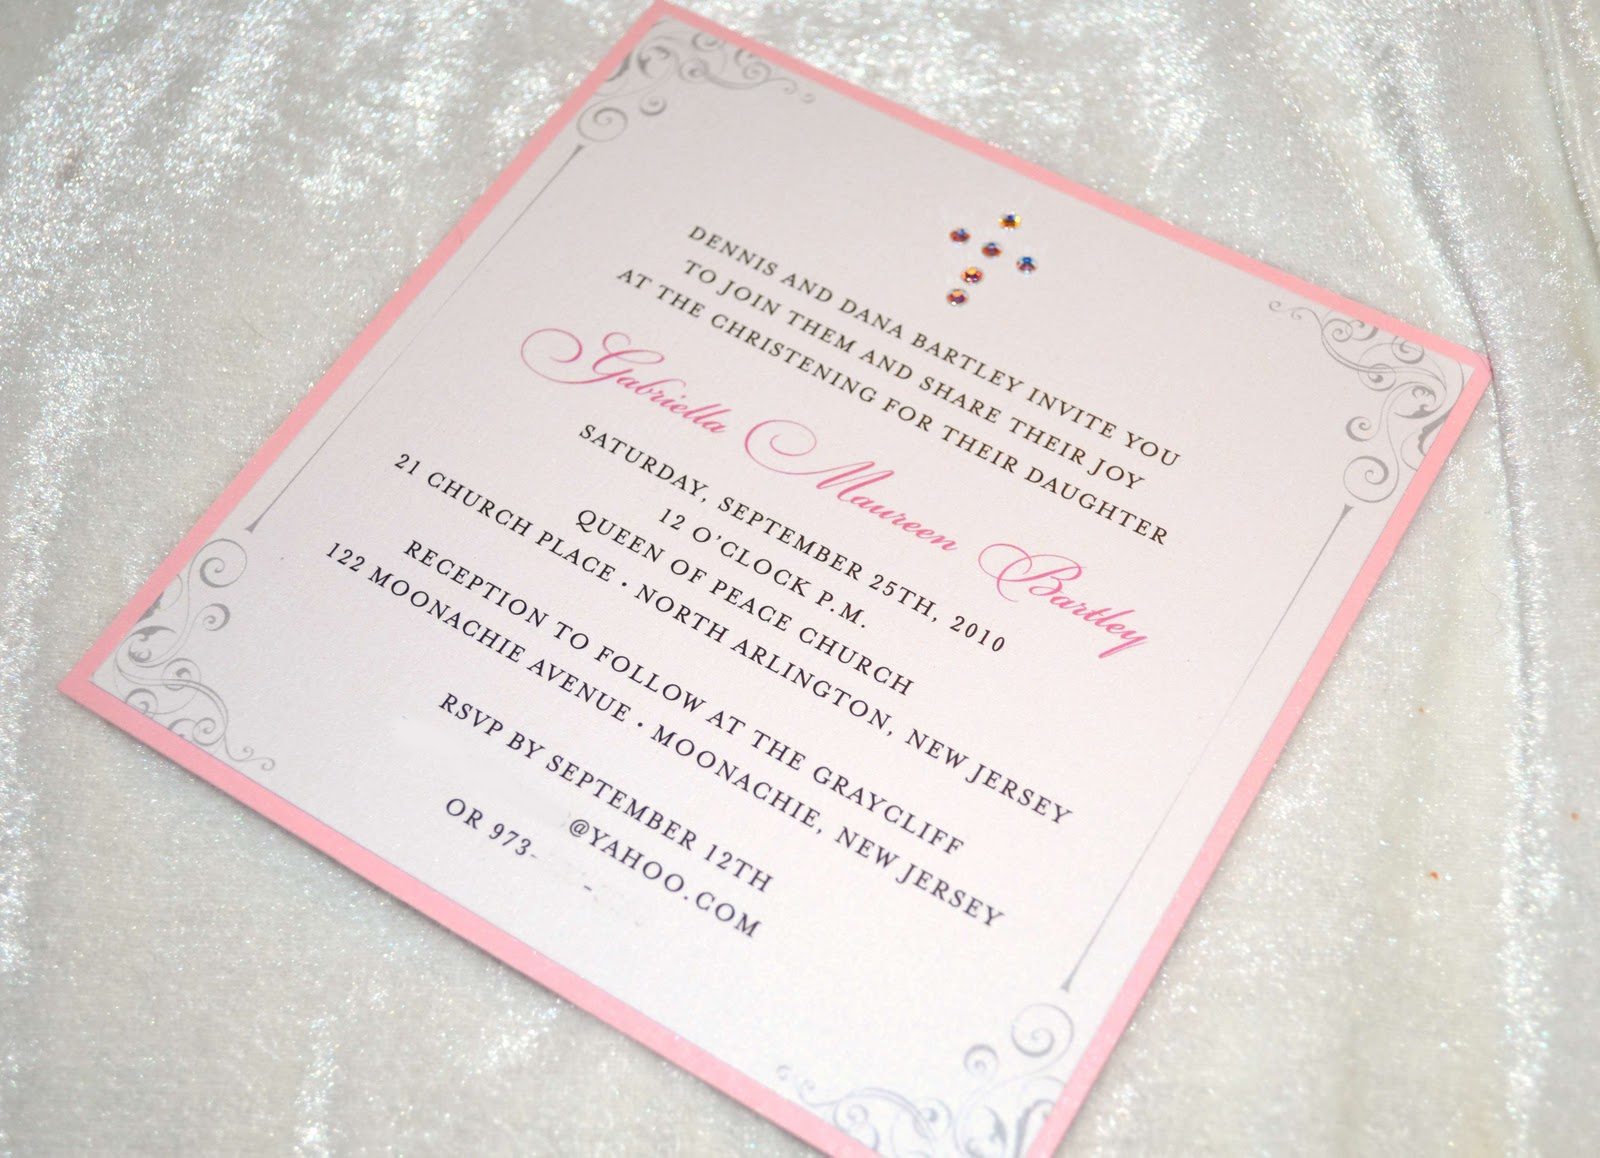 Crystals Christening Invitations Cake Ideas And Designs